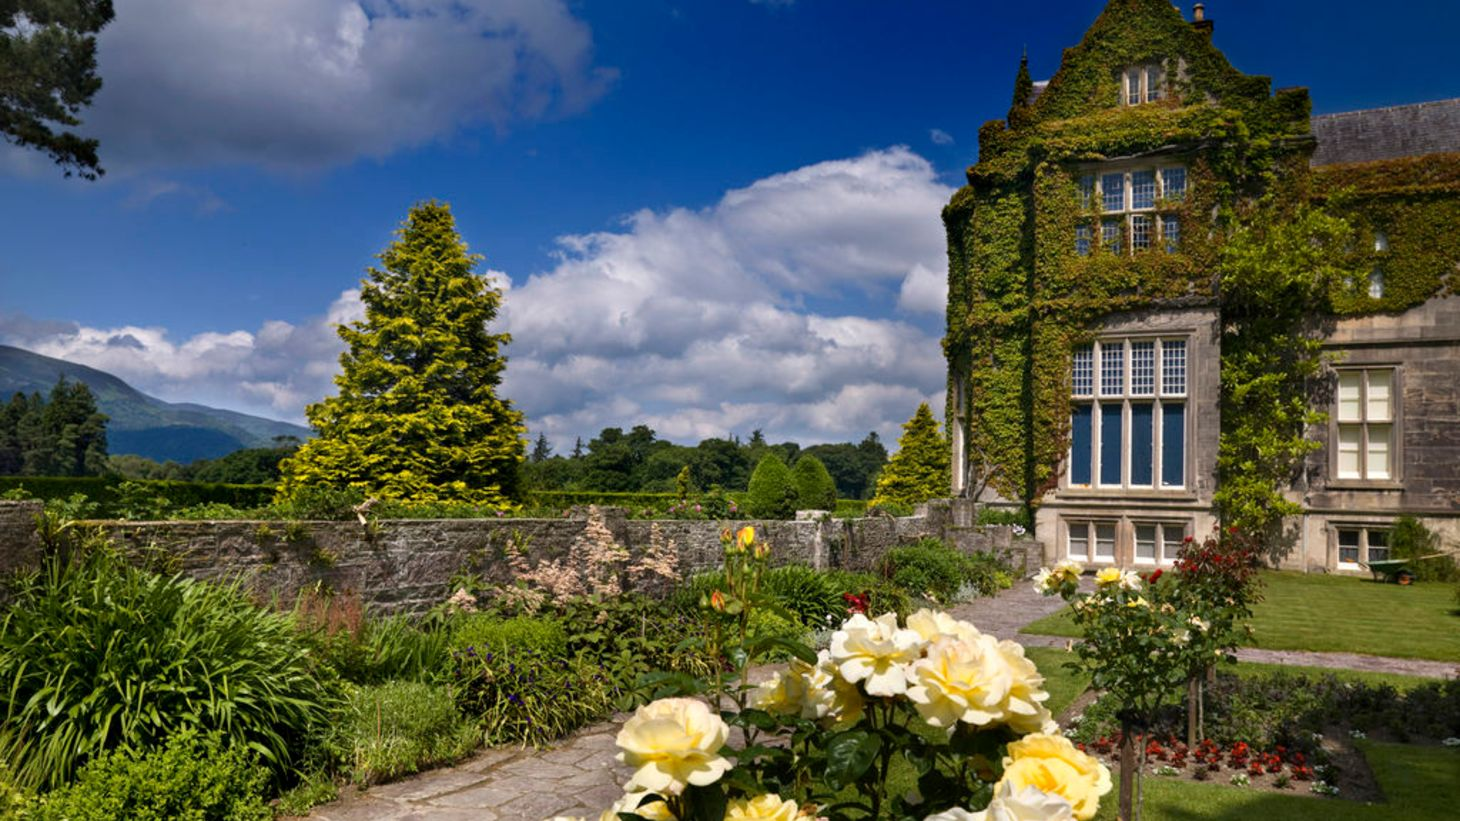 Take the kids to explore the grounds of Muckross House.